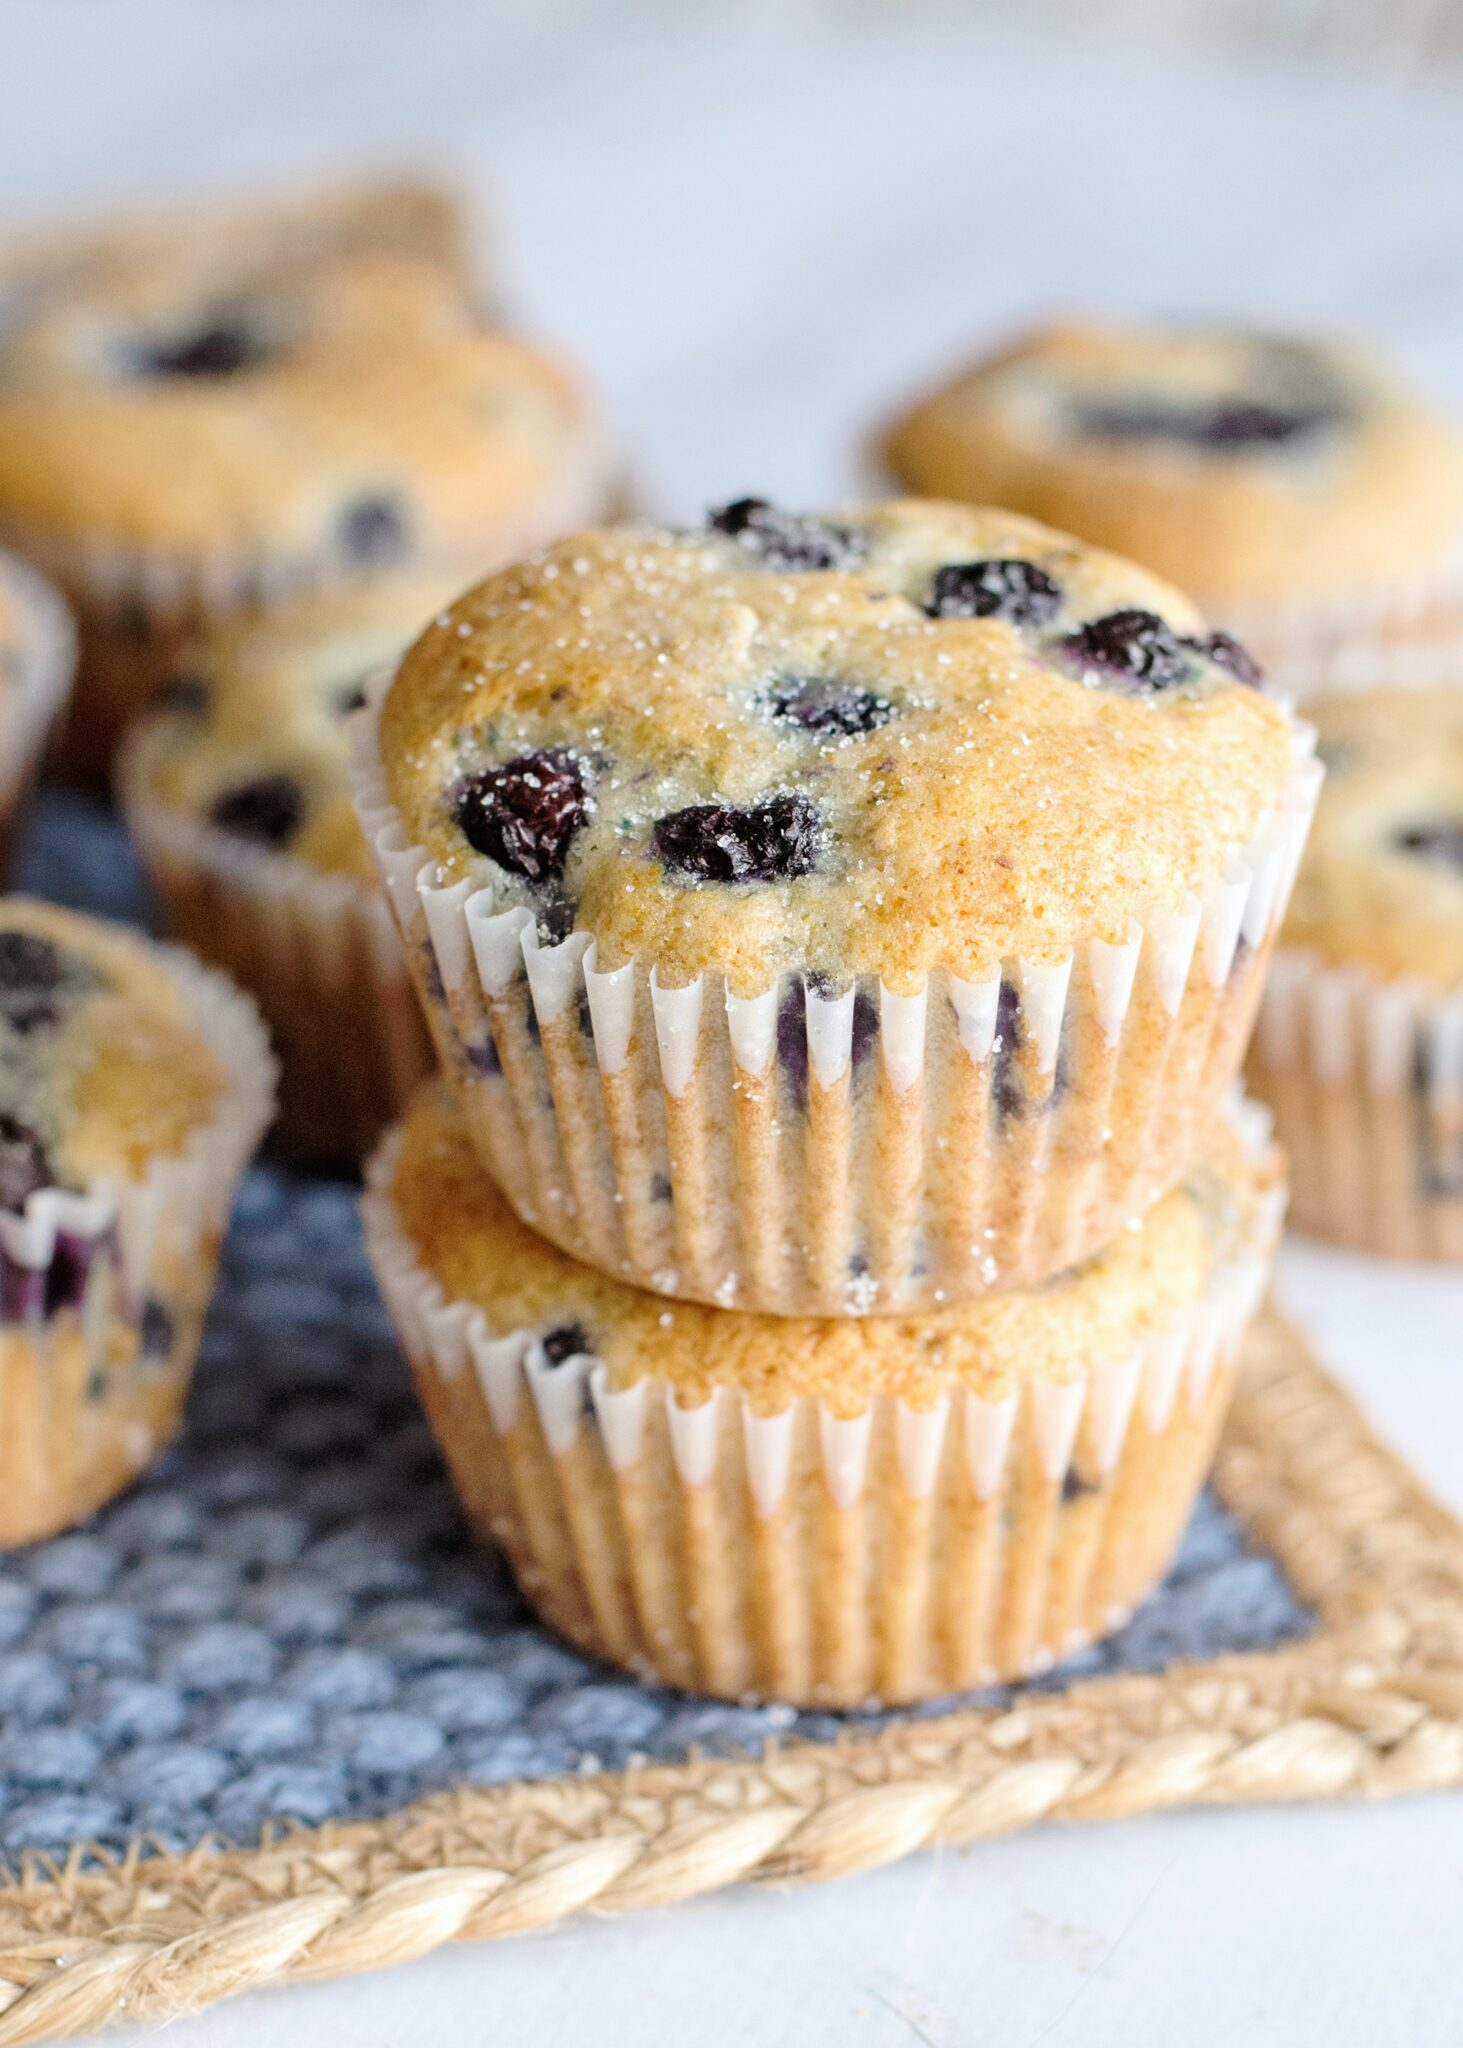 A close up of blueberry muffins in white liners, granulated sugar coats the top.